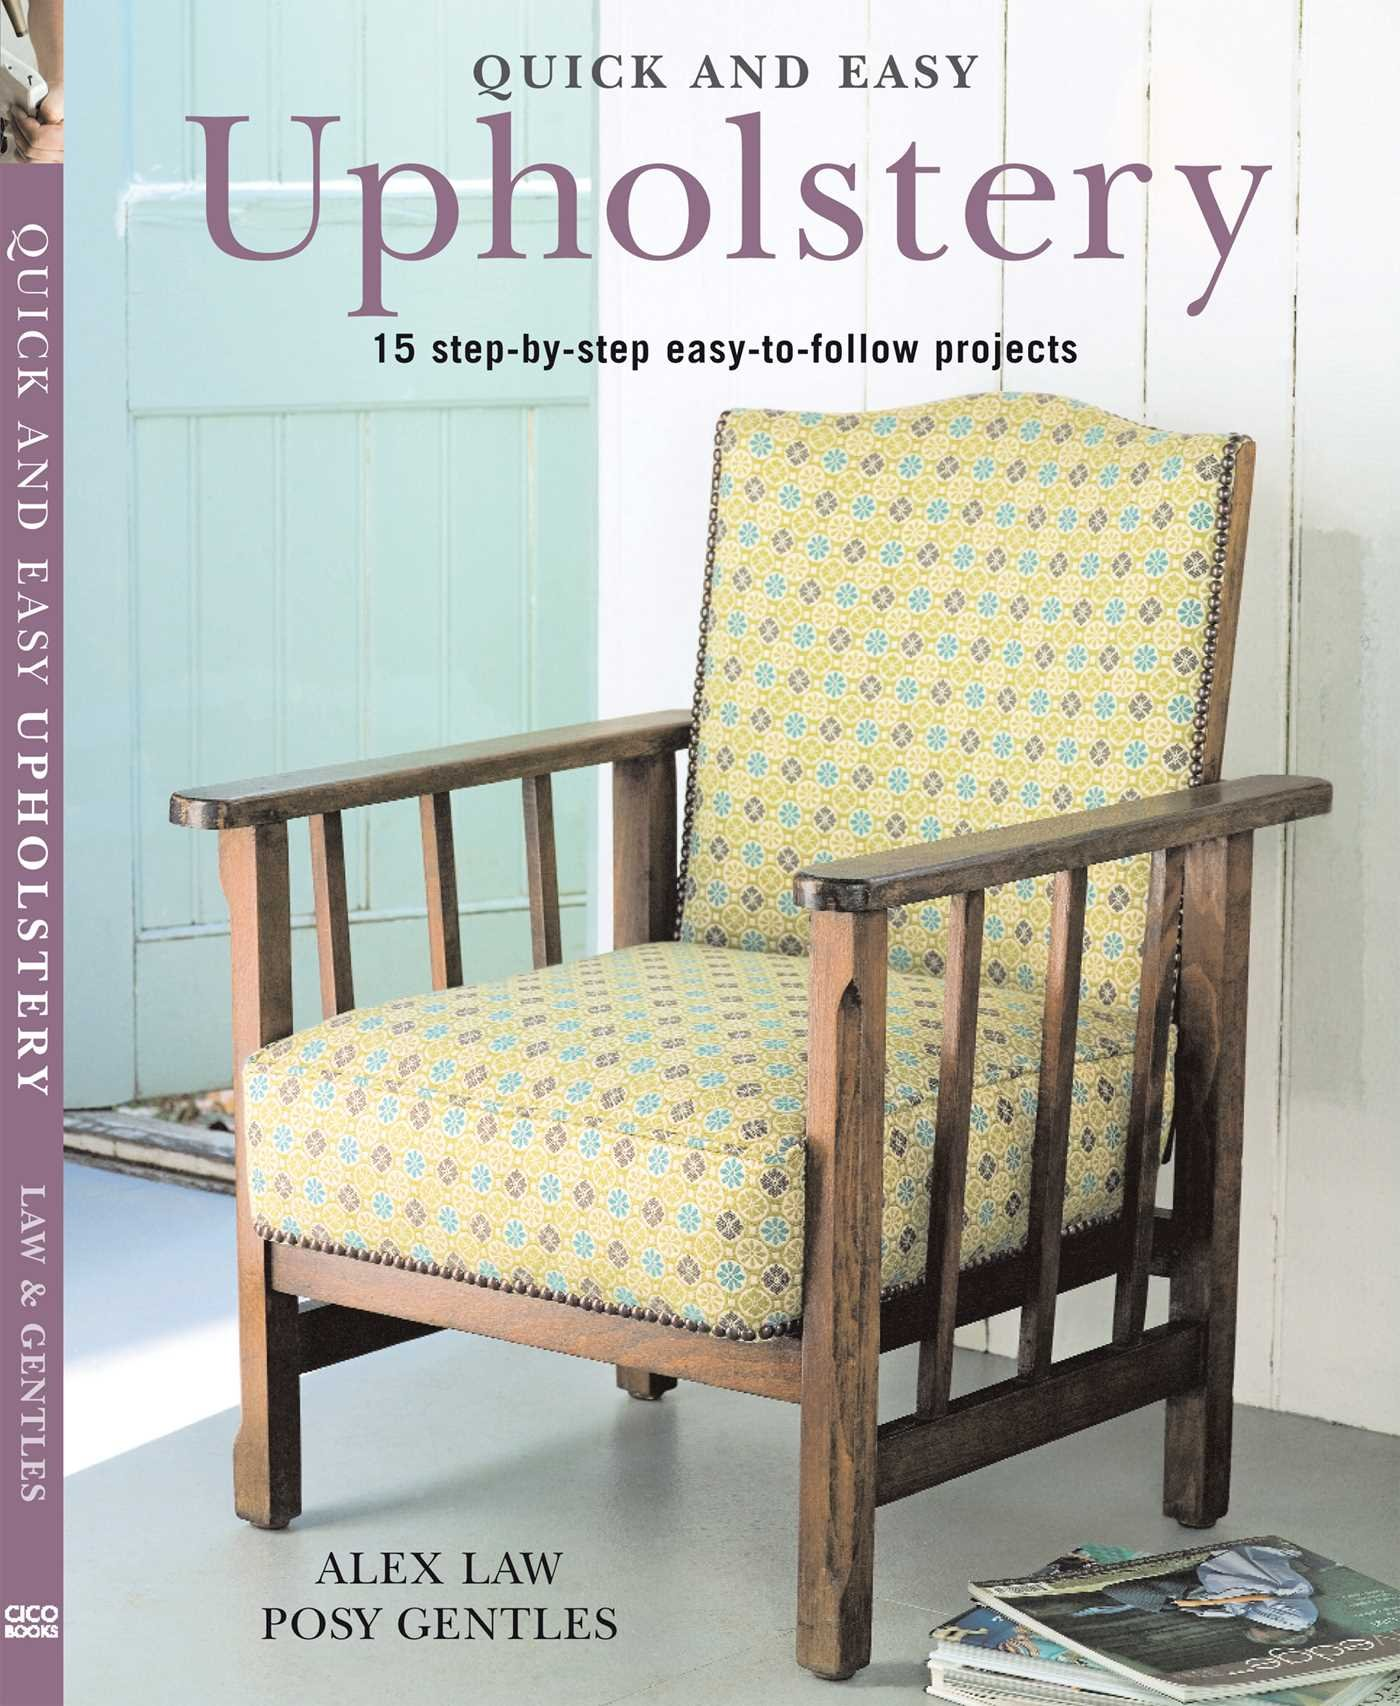 Quick and Easy Upholstery 15 step by step easy to follow projects